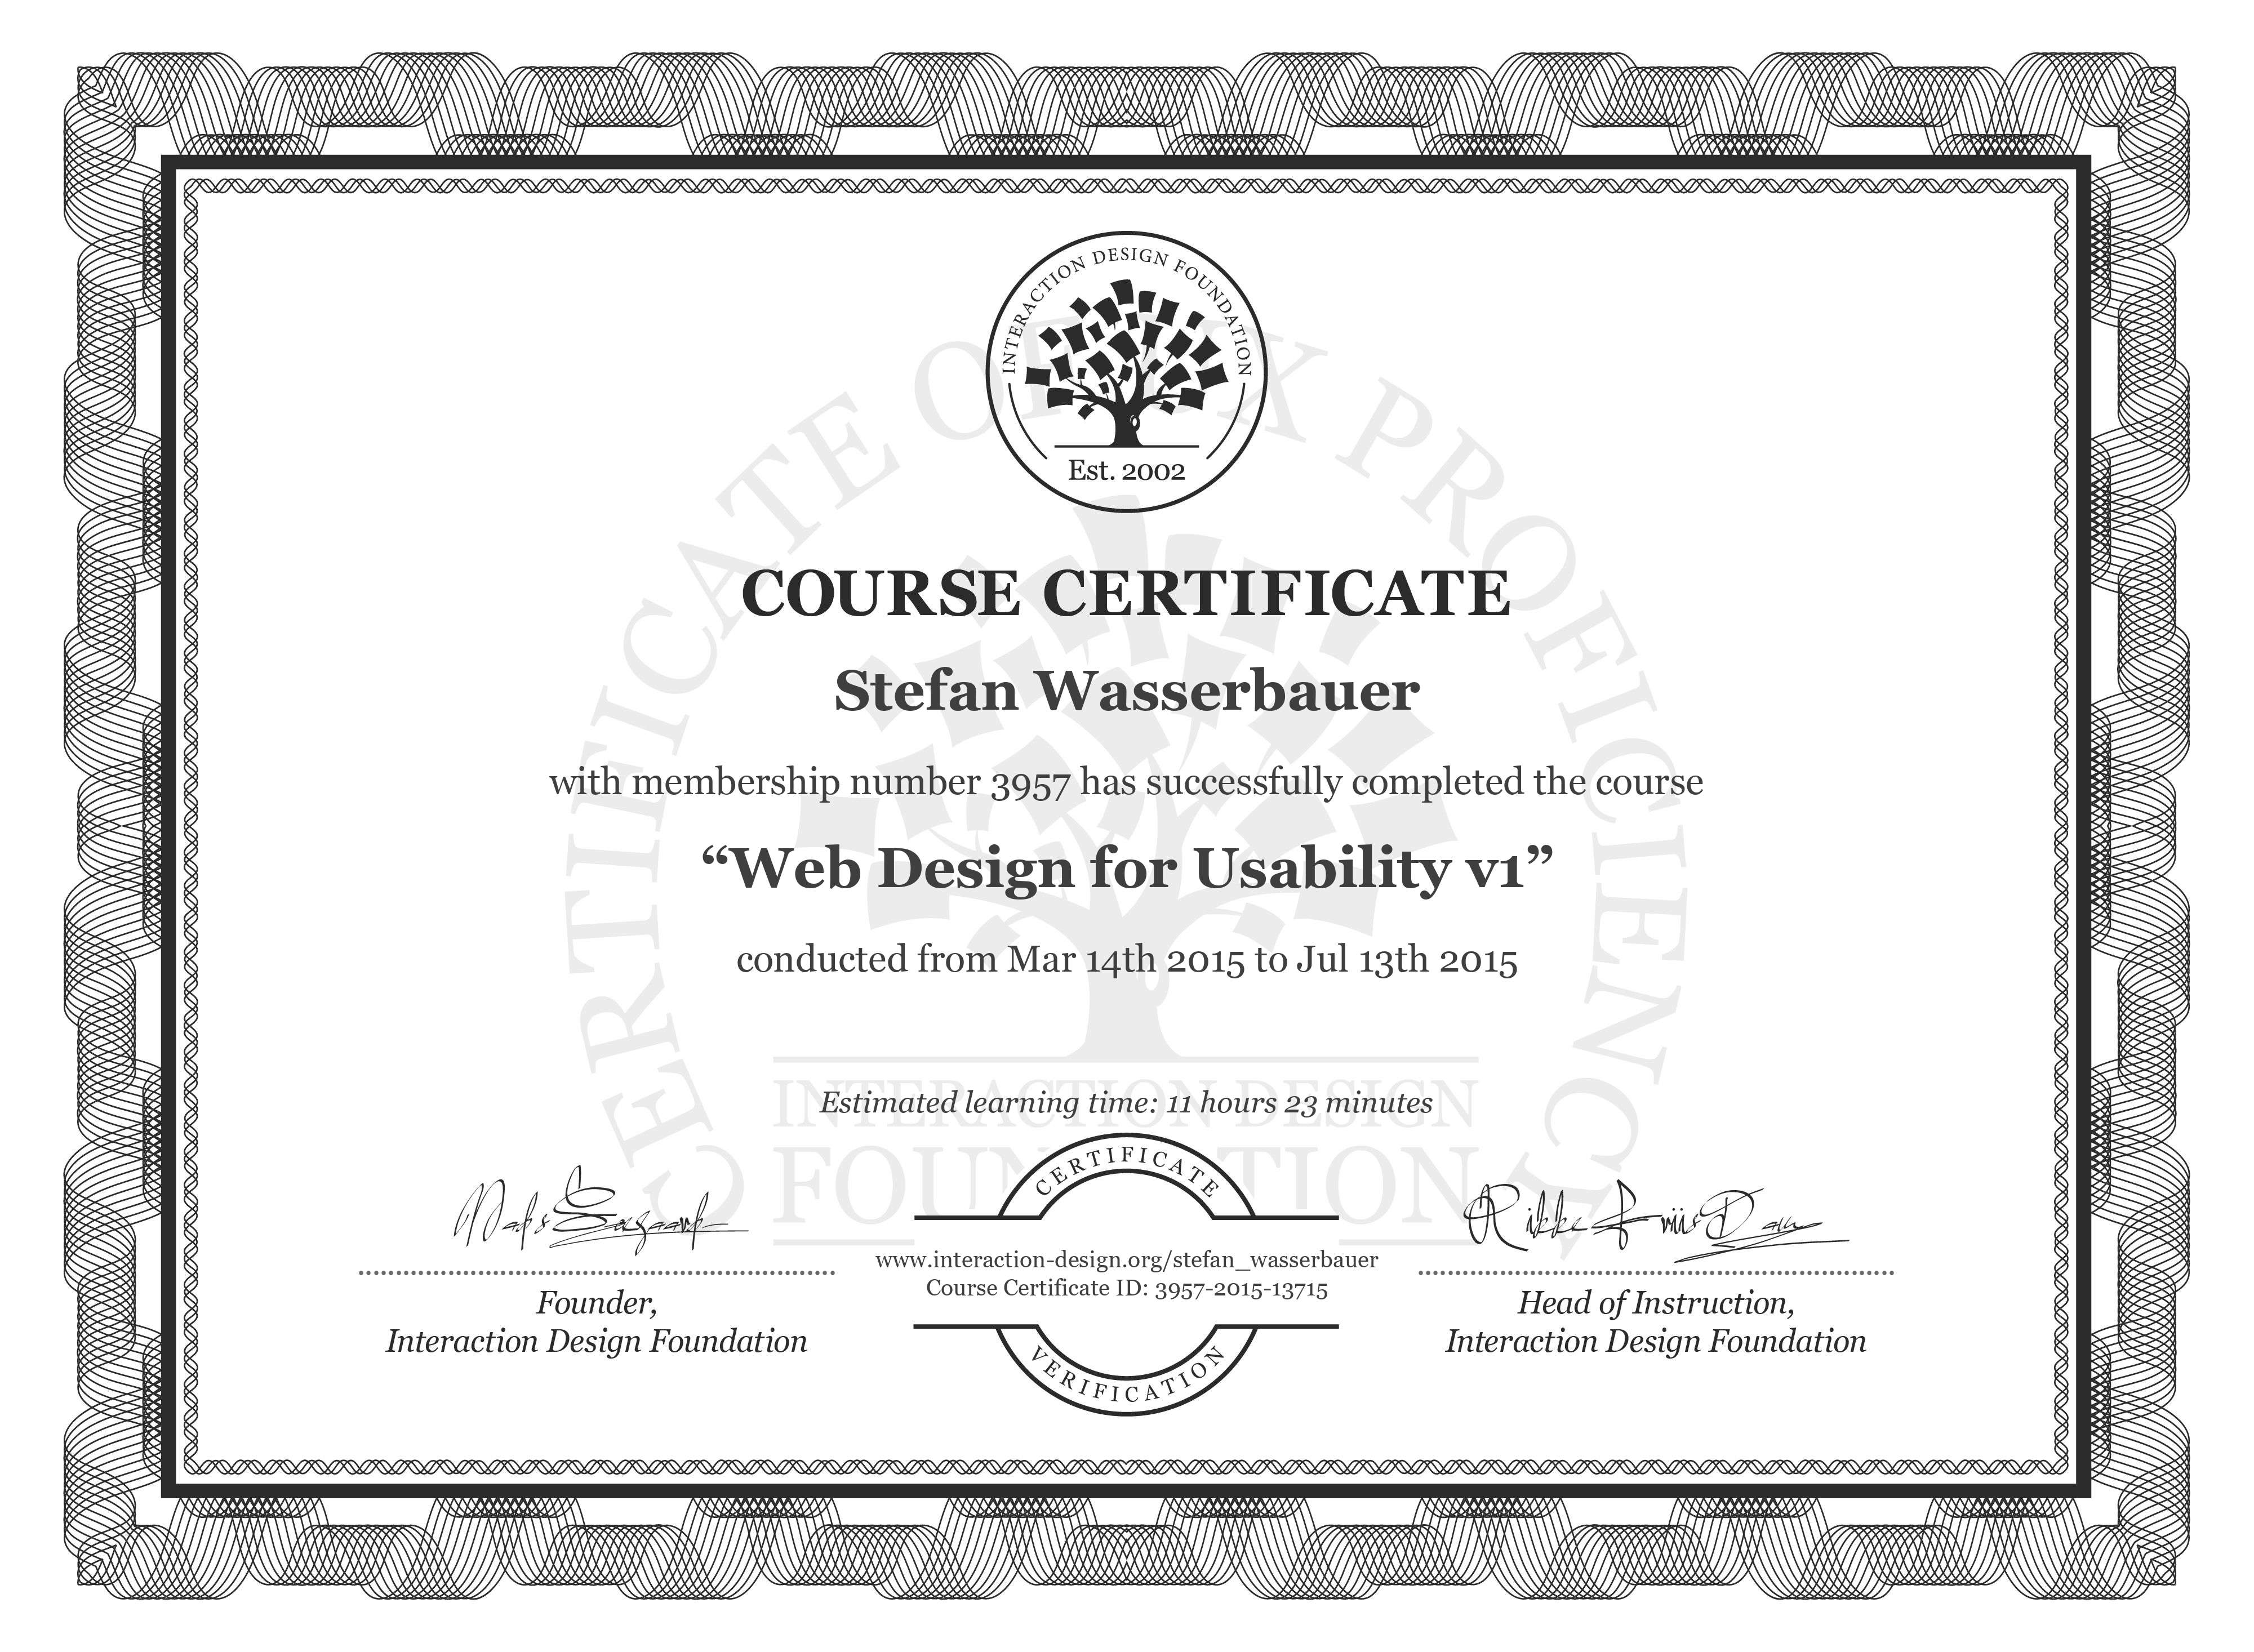 Stefan Wasserbauer's Course Certificate: Web Design for Usability